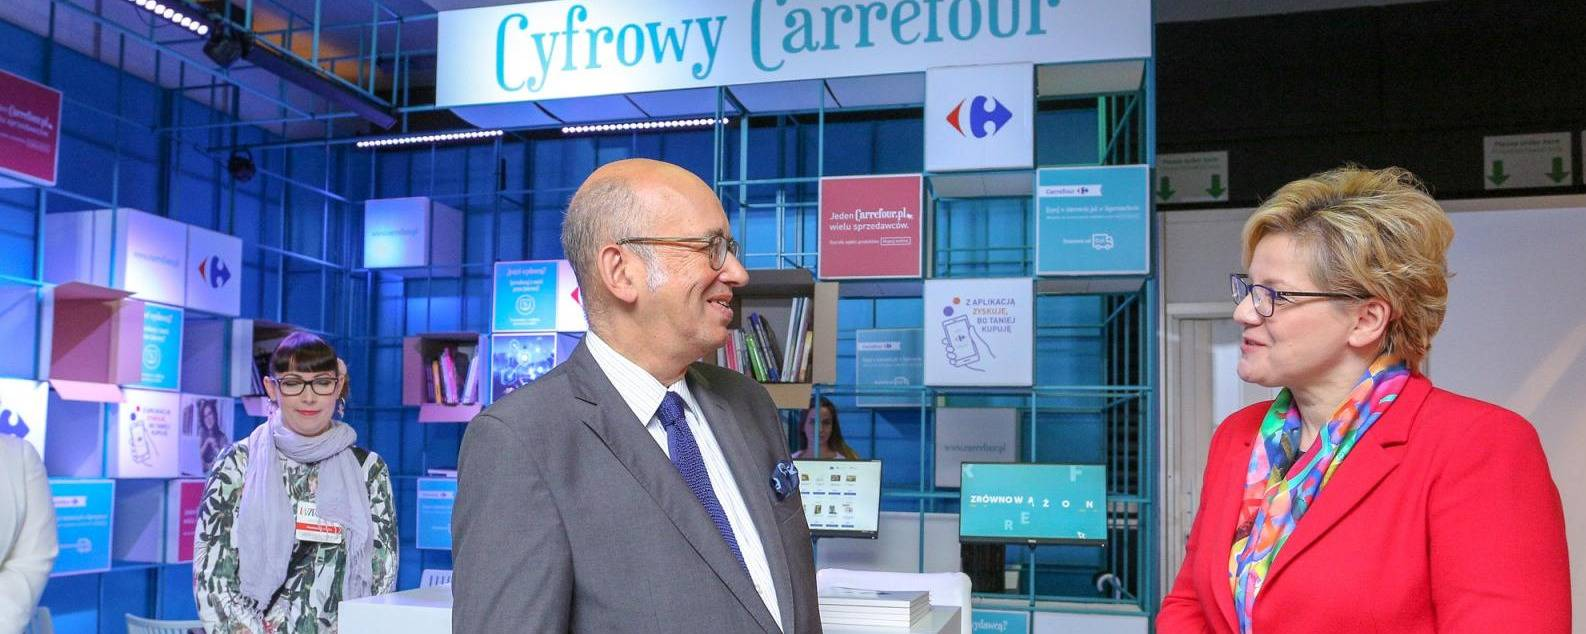 Carrefour on Warsaw Book Fair